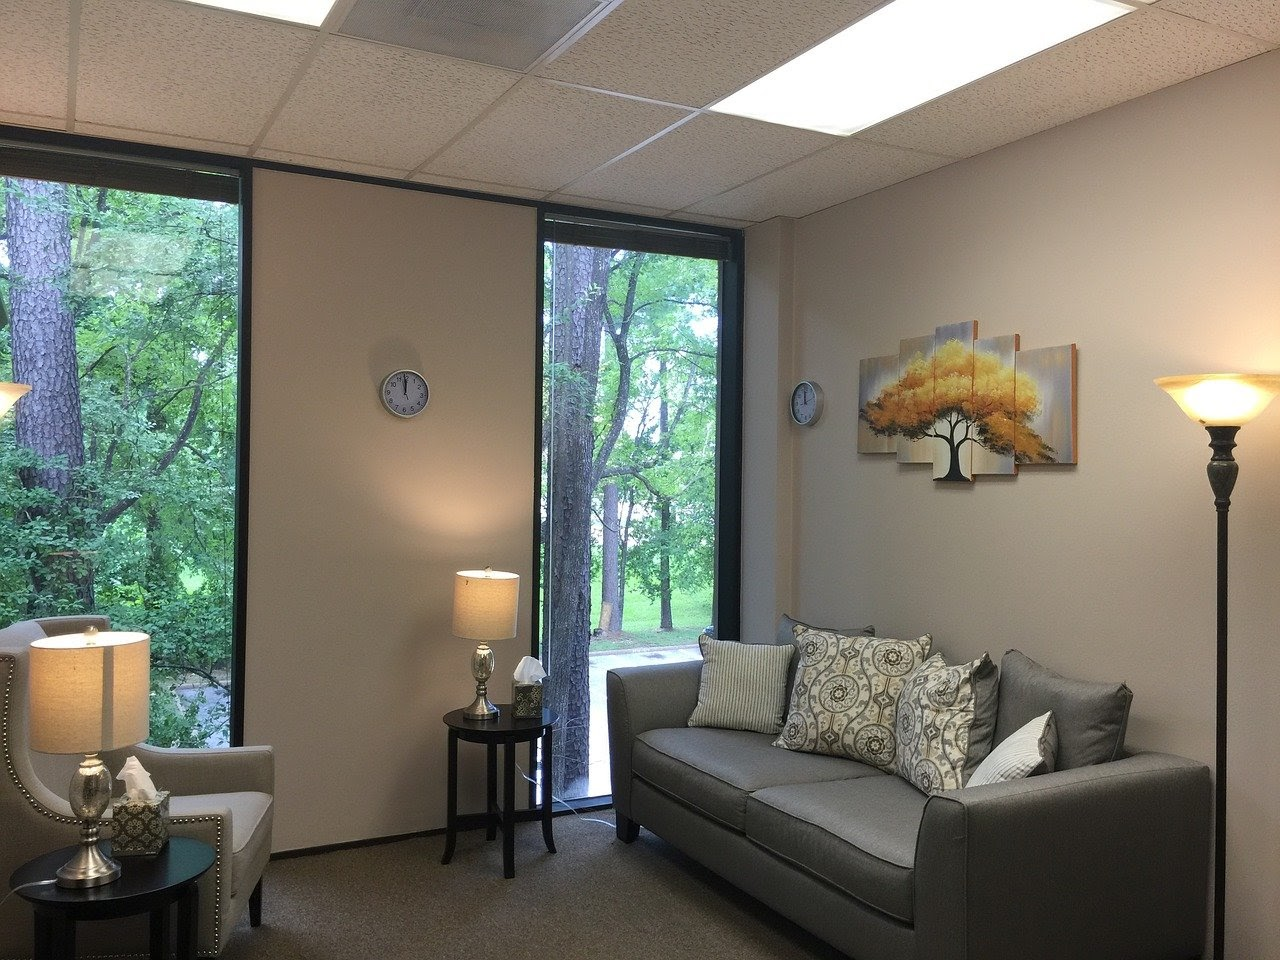 Substance abuse counselor's office with a couch, chair, and lamps lighting up the room